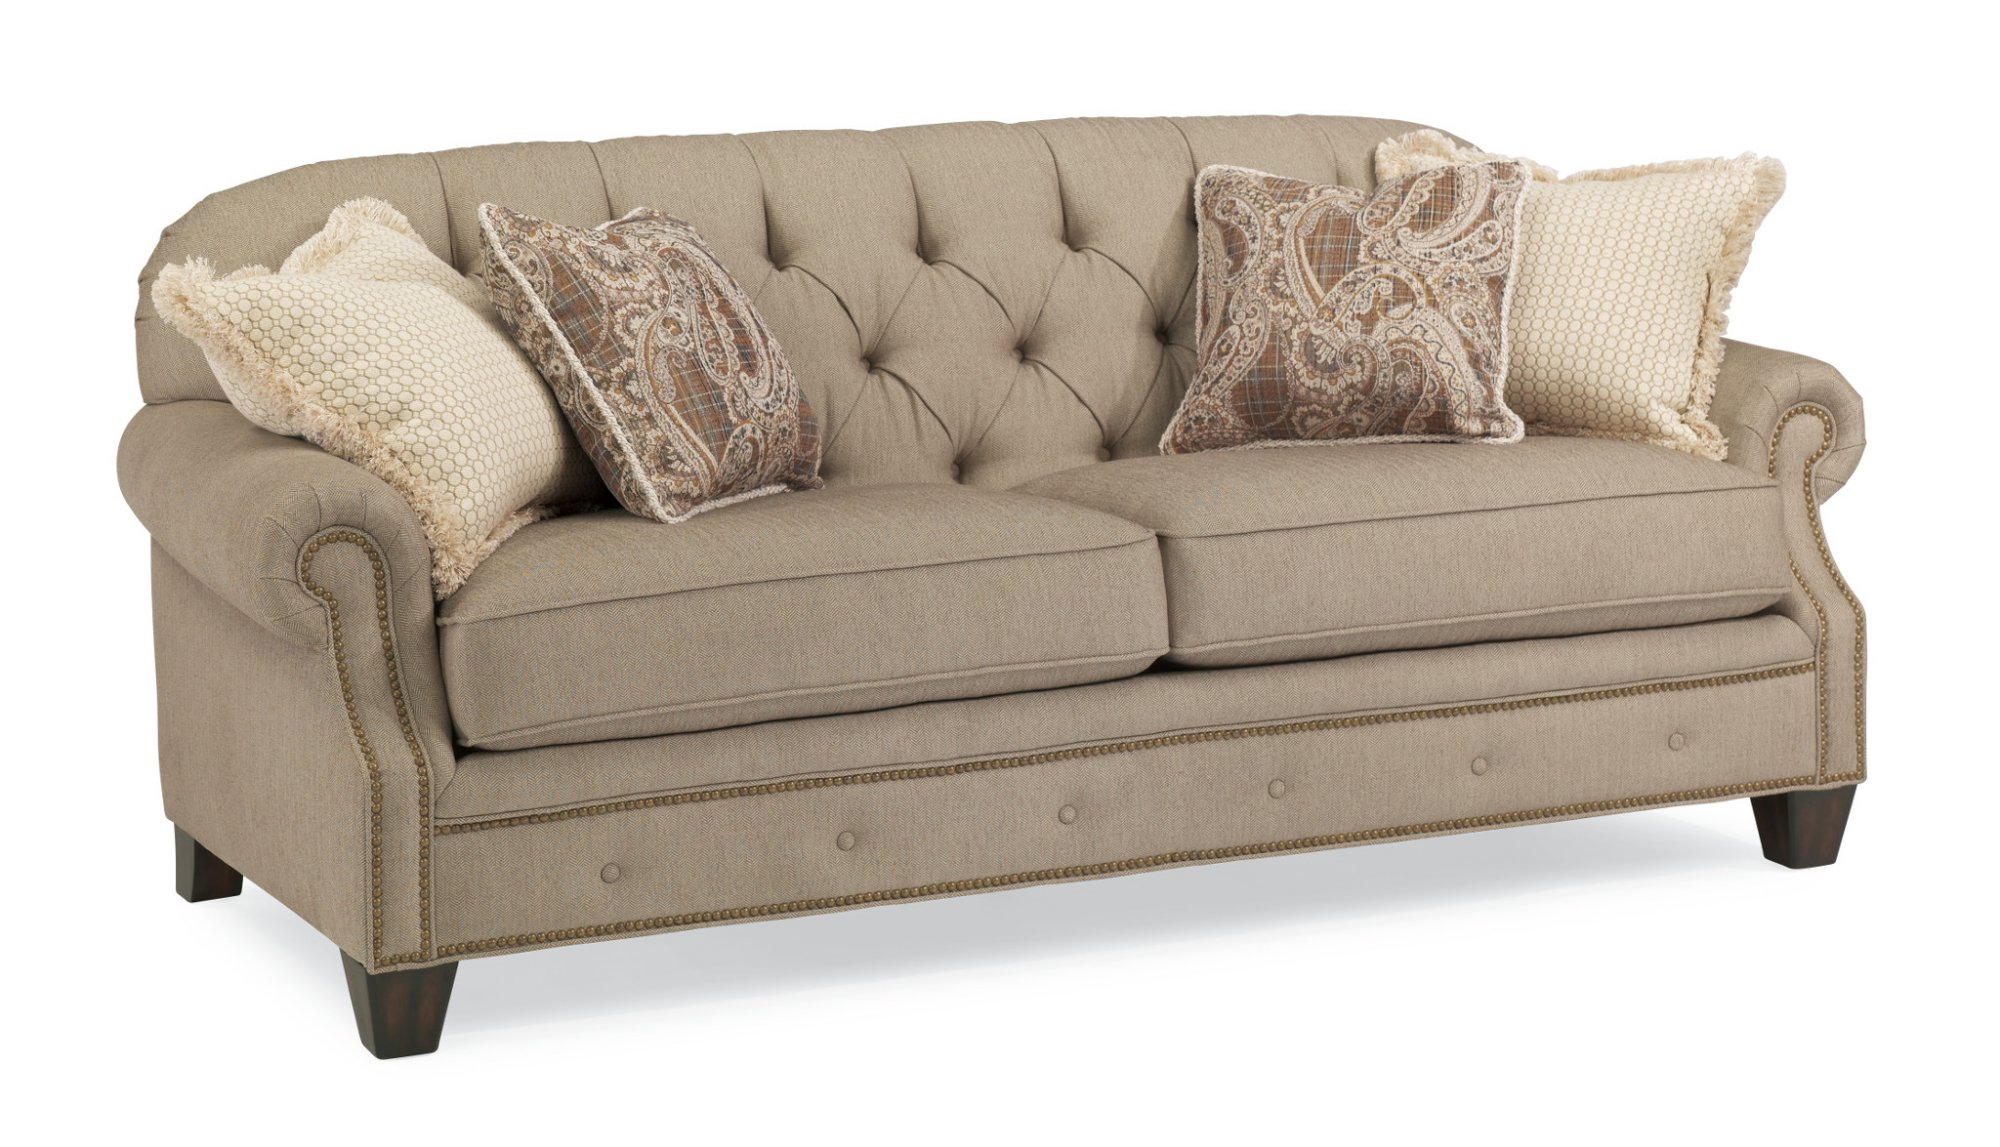 flexsteel sofa share via email download a high-resolution image PGGBPCI